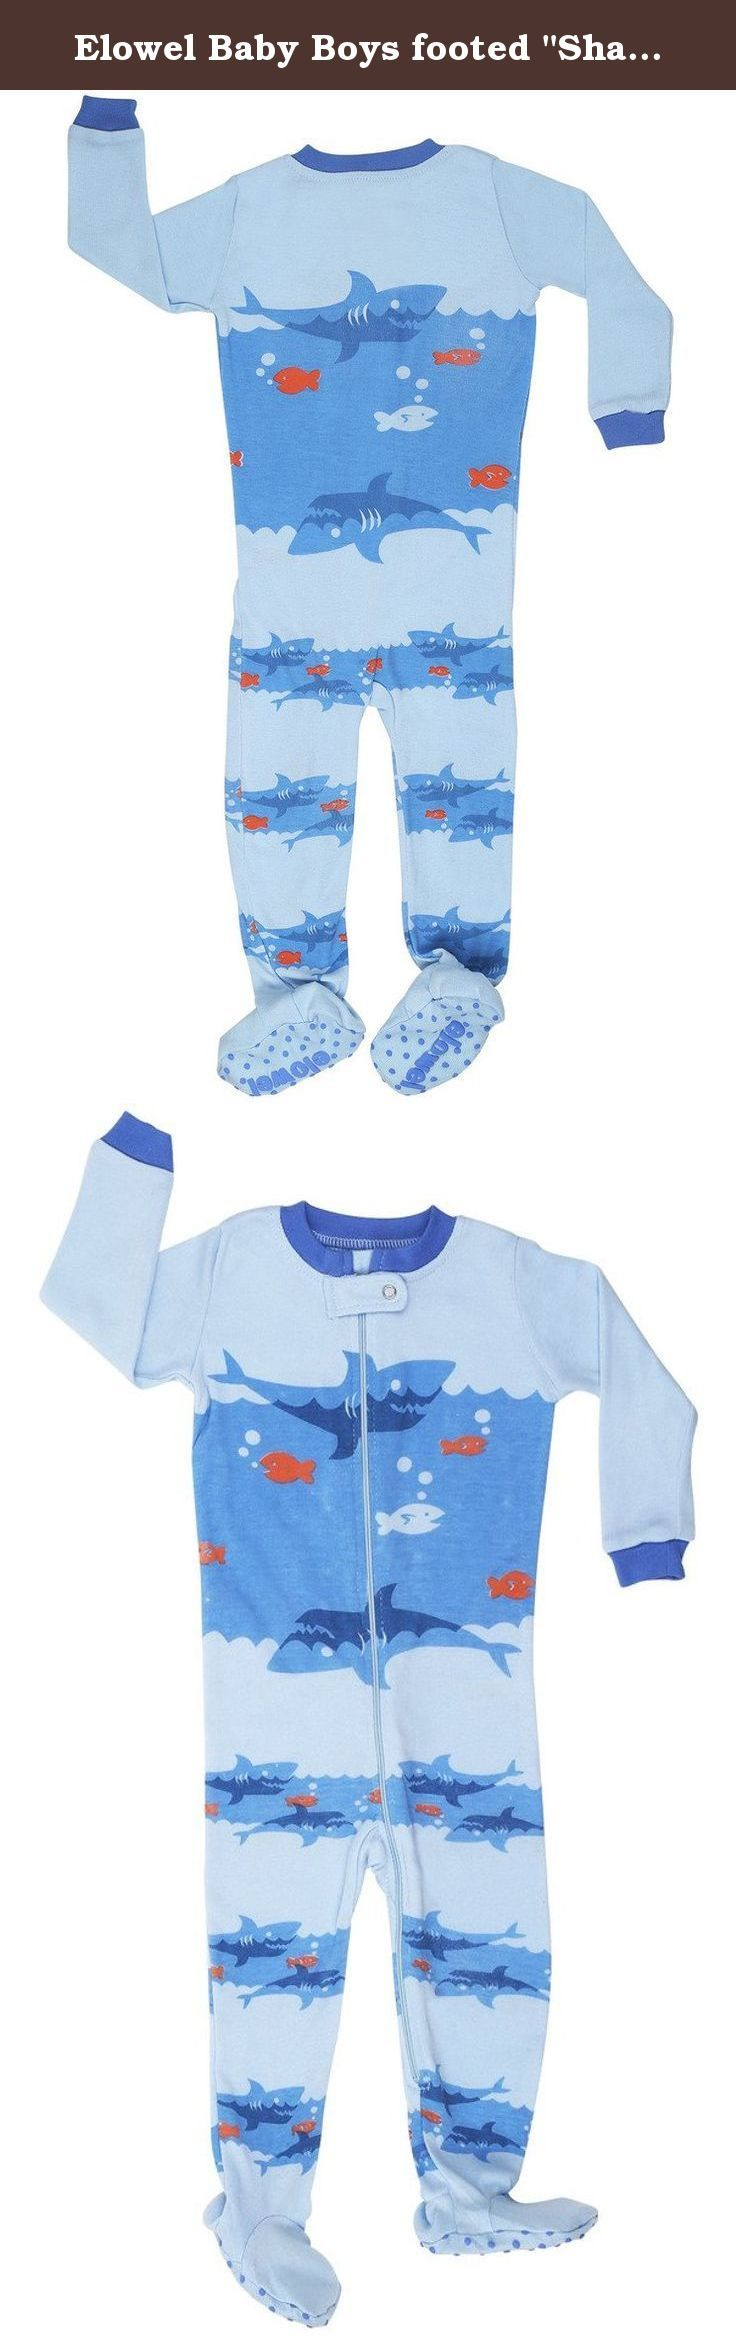 best ideas about boys footed pajamas baby boy elowel baby boys footed shark pajama sleeper 100% cotton 12 18 months